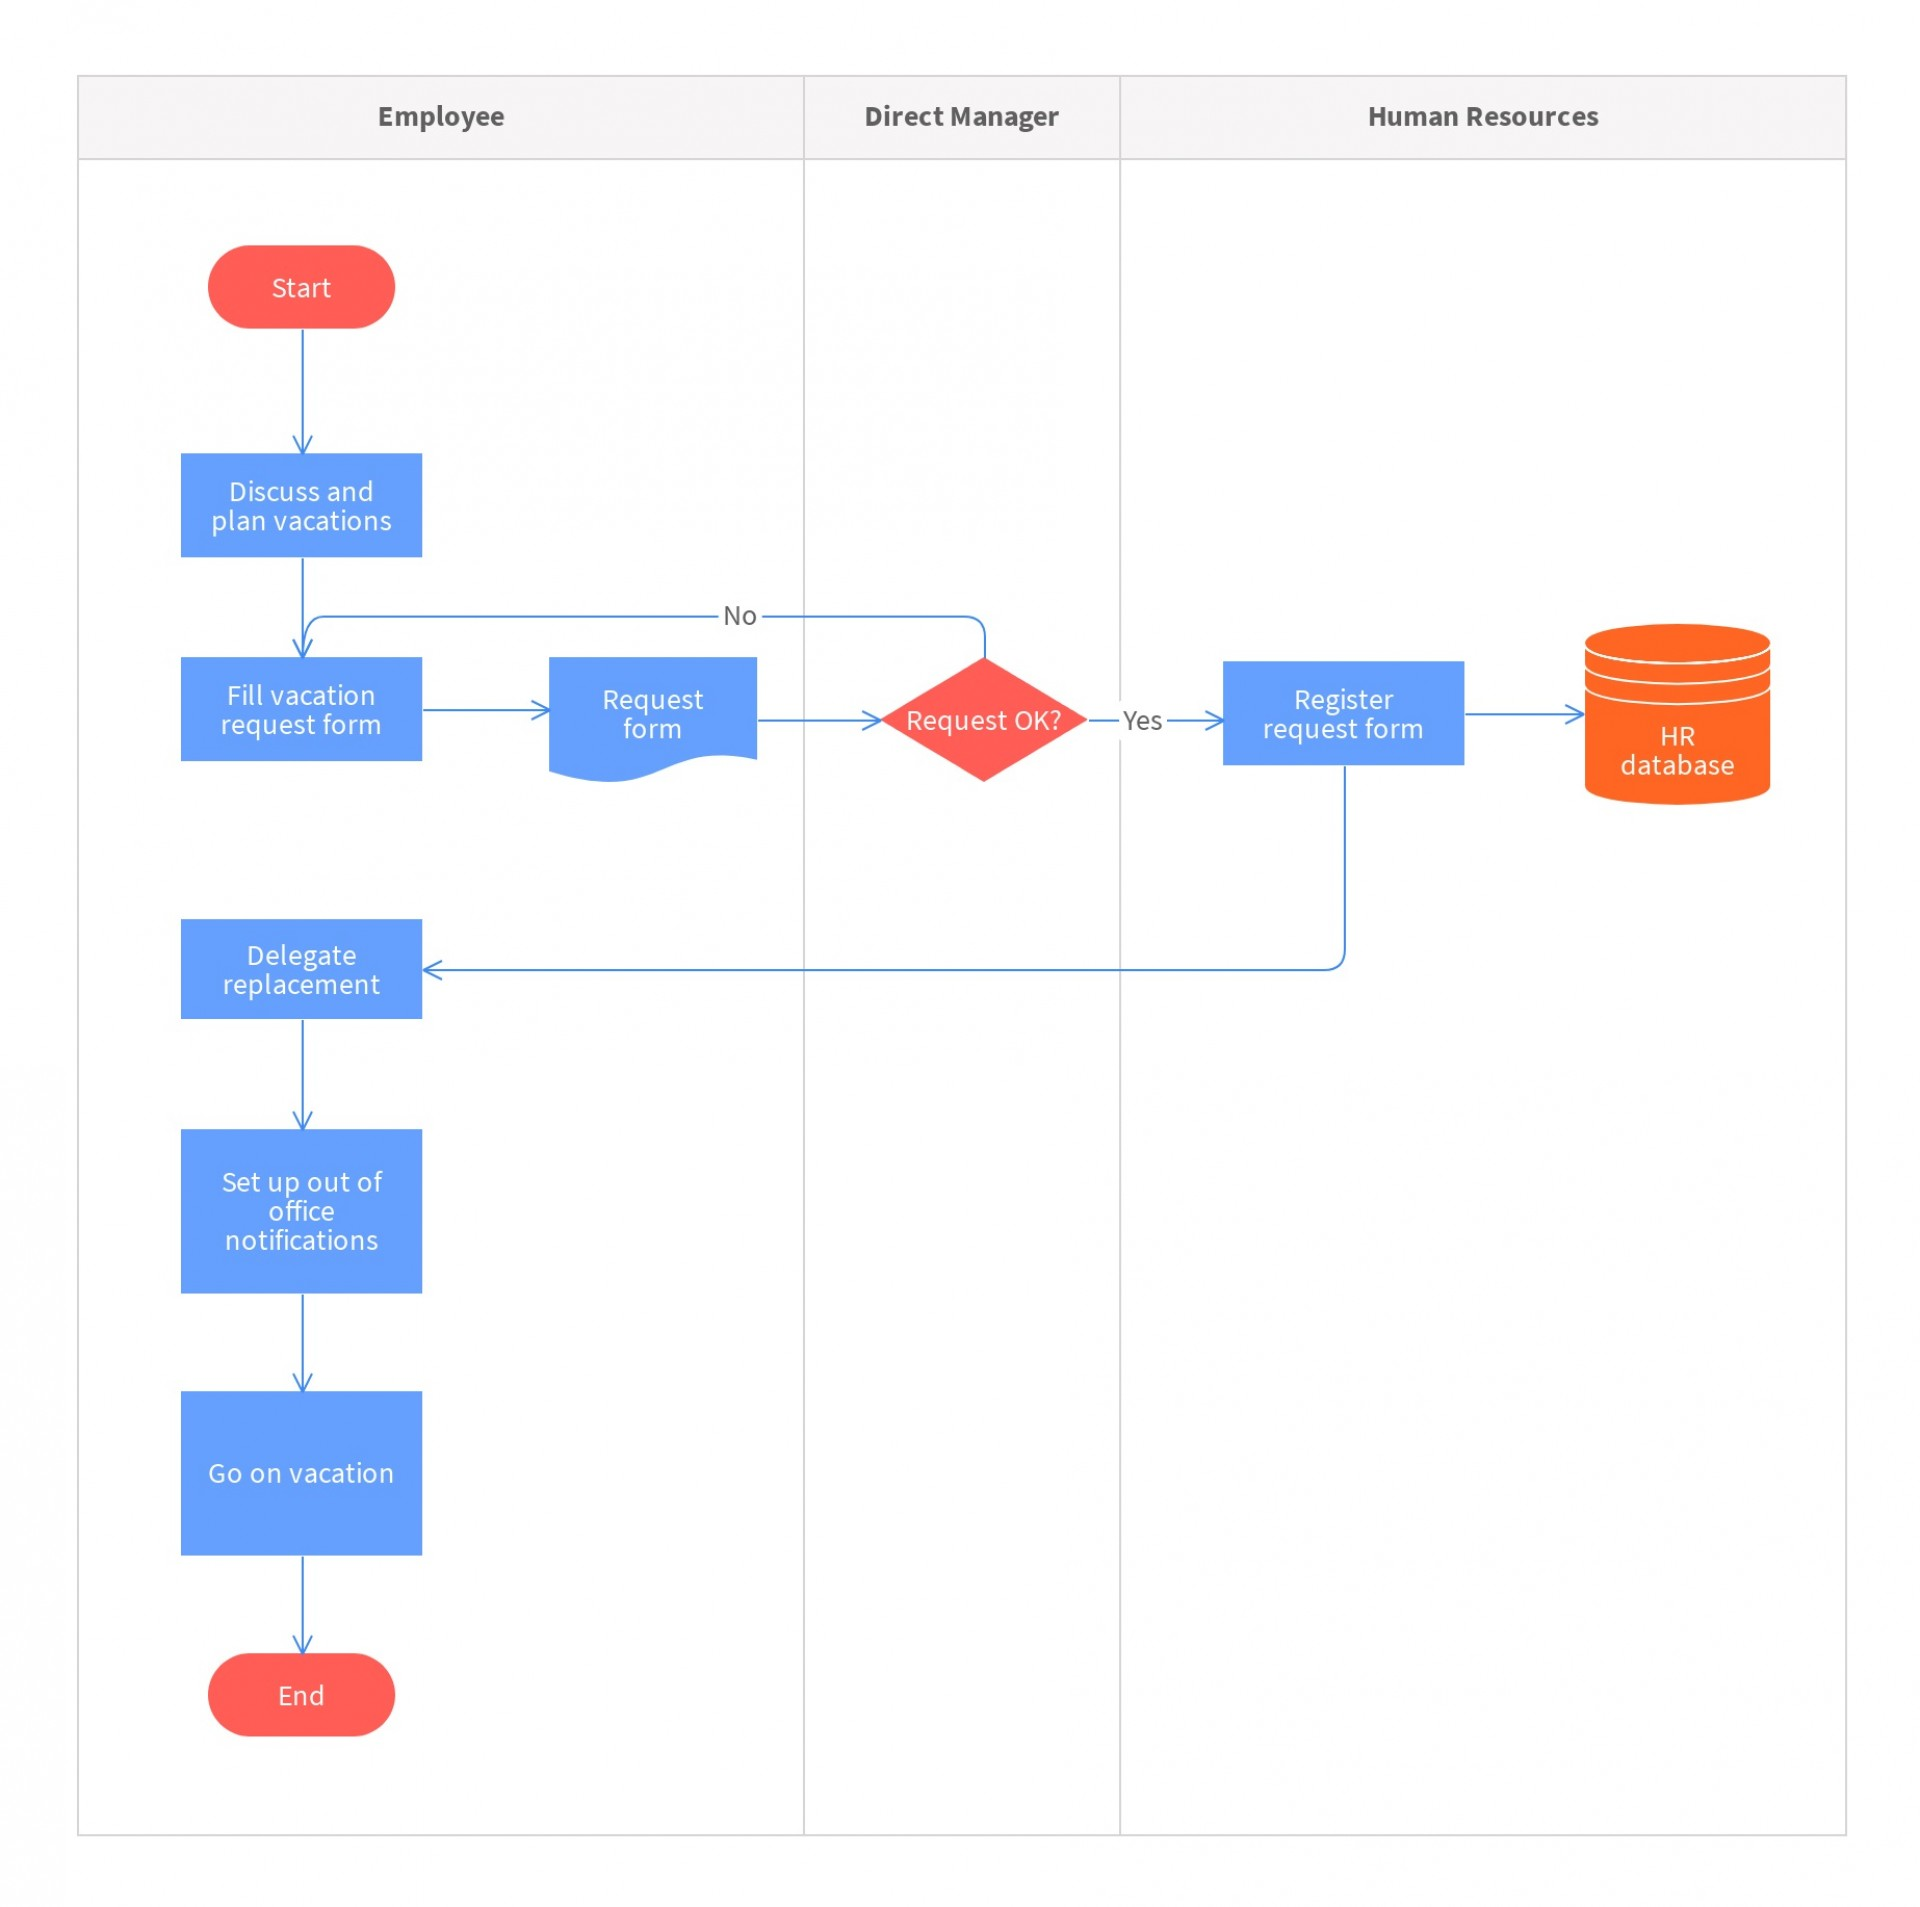 009 Unforgettable Working Flow Chart Template Image  Proces Manufacturing Word Free Download Workflow1920